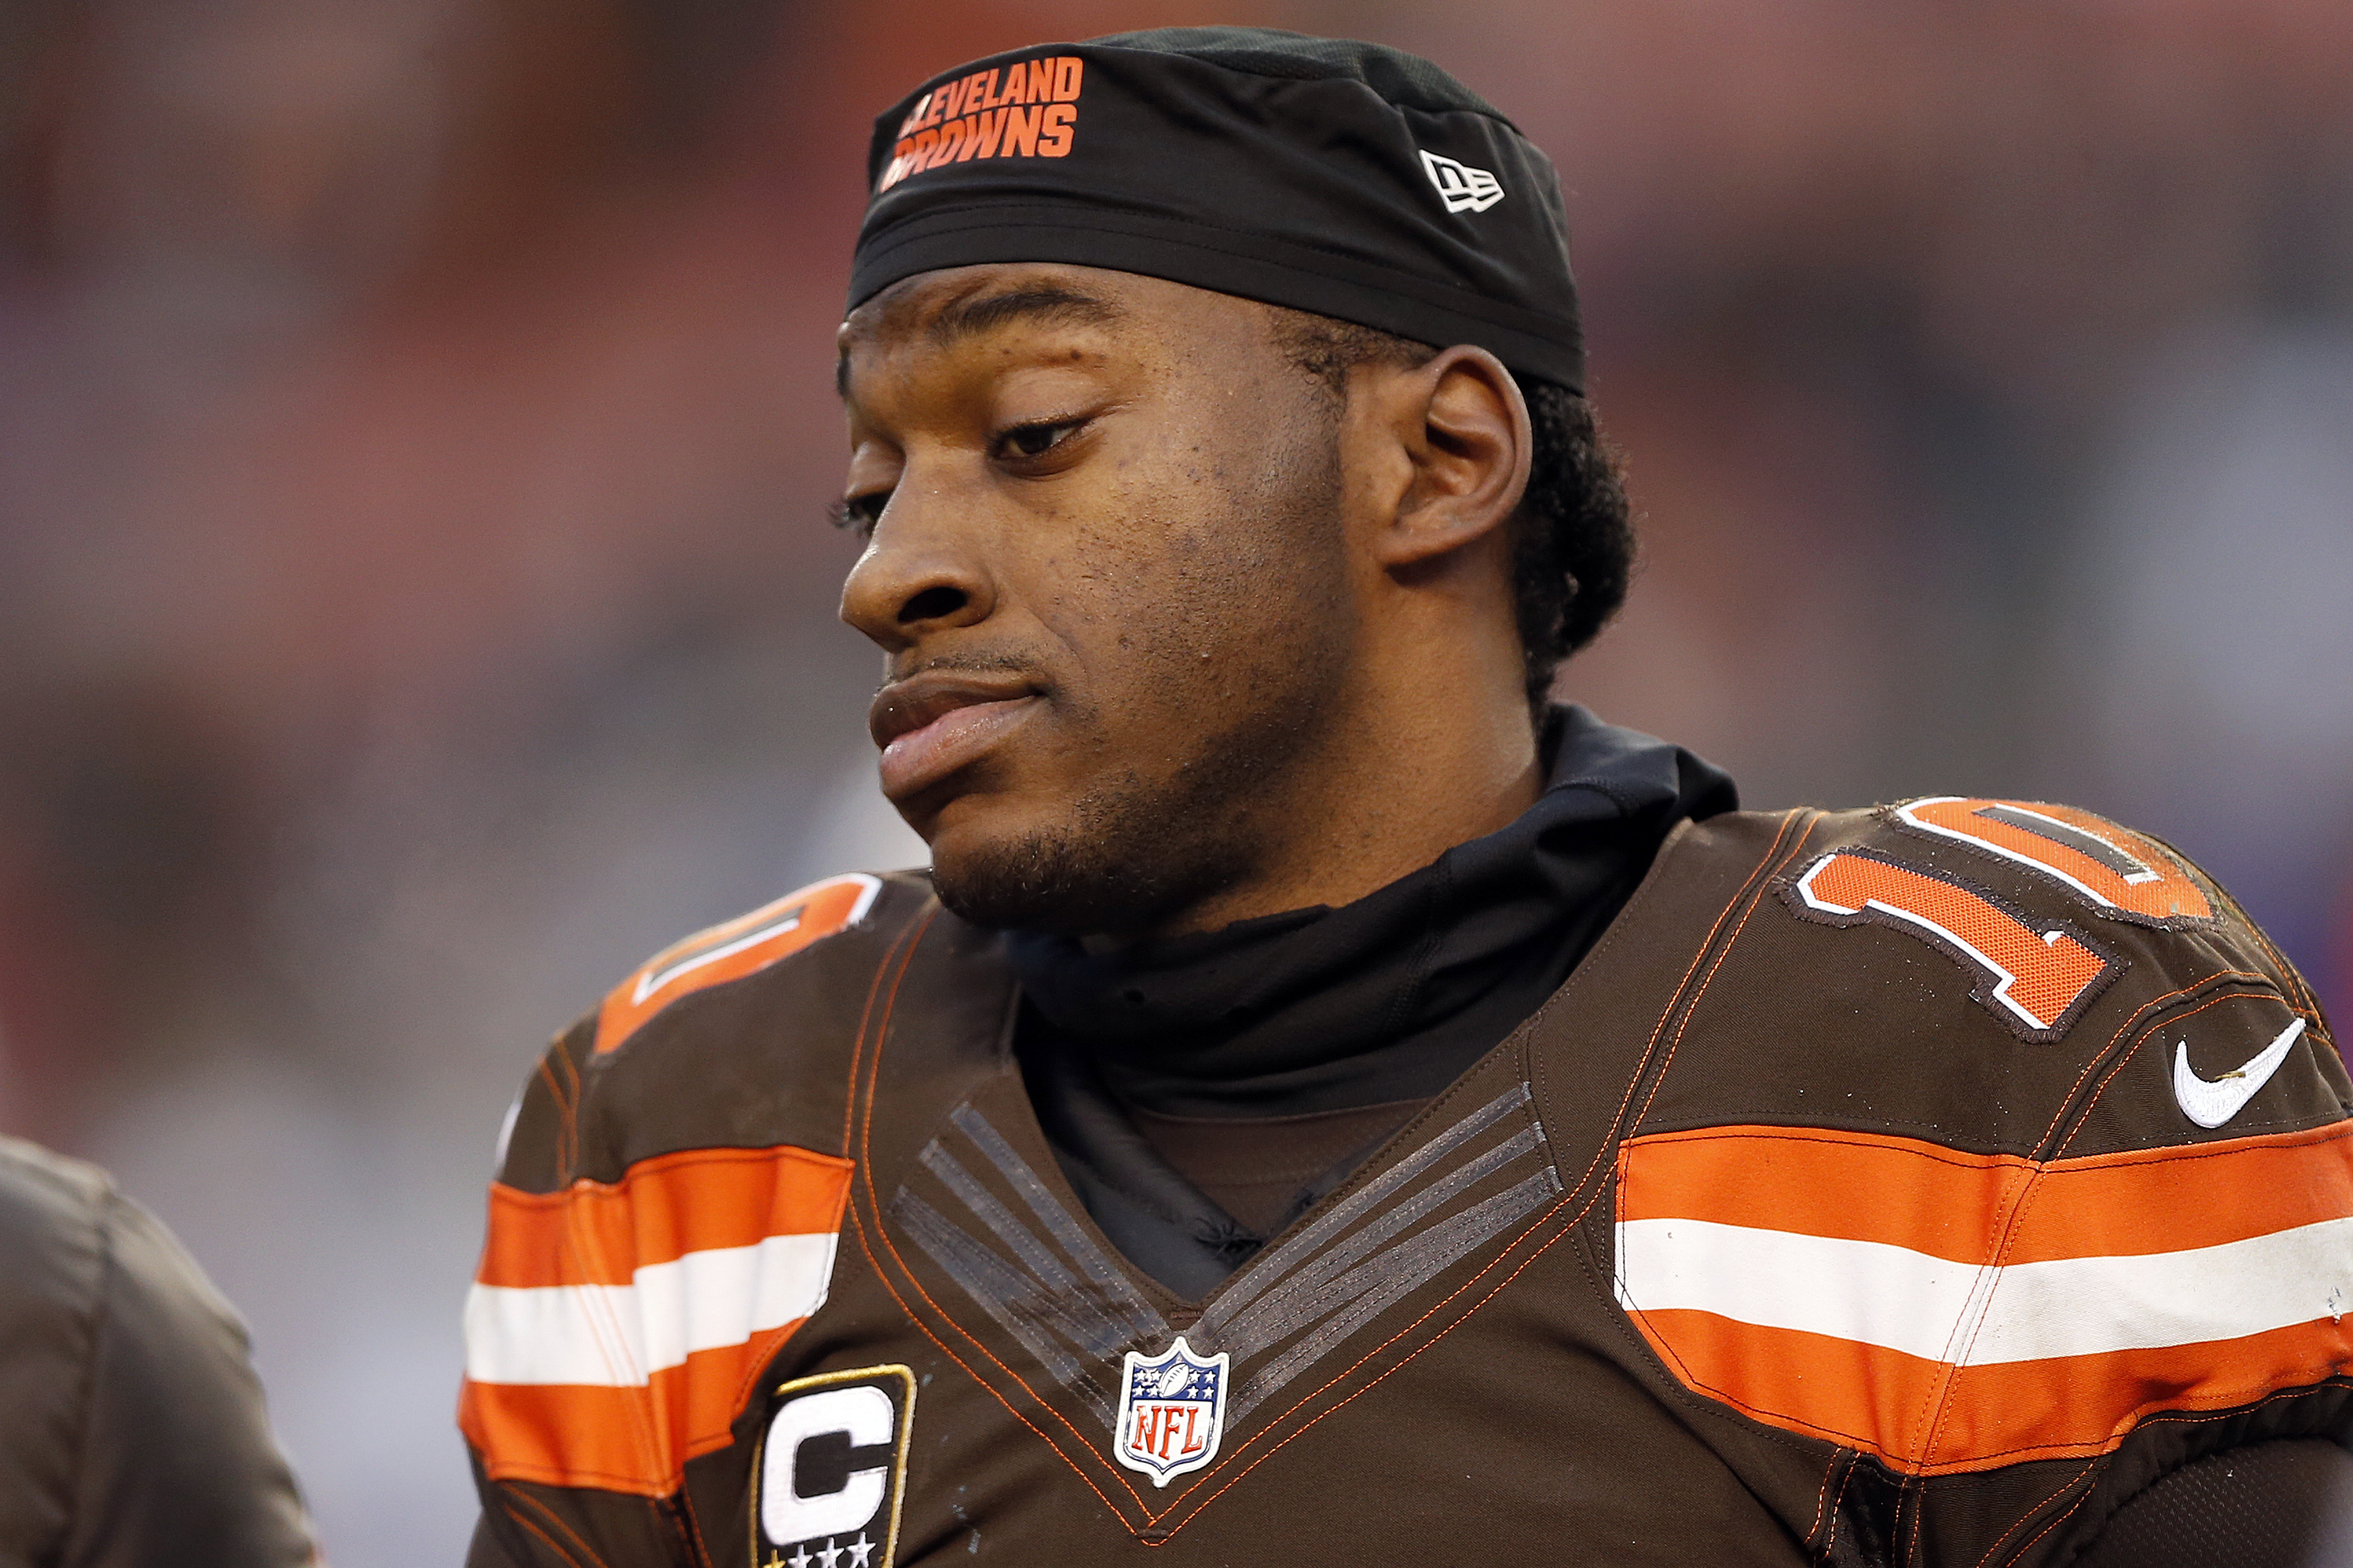 promo code 37331 c797a RG3 to Ravens Completes the NFL's Dumbest Offseason of QB ...